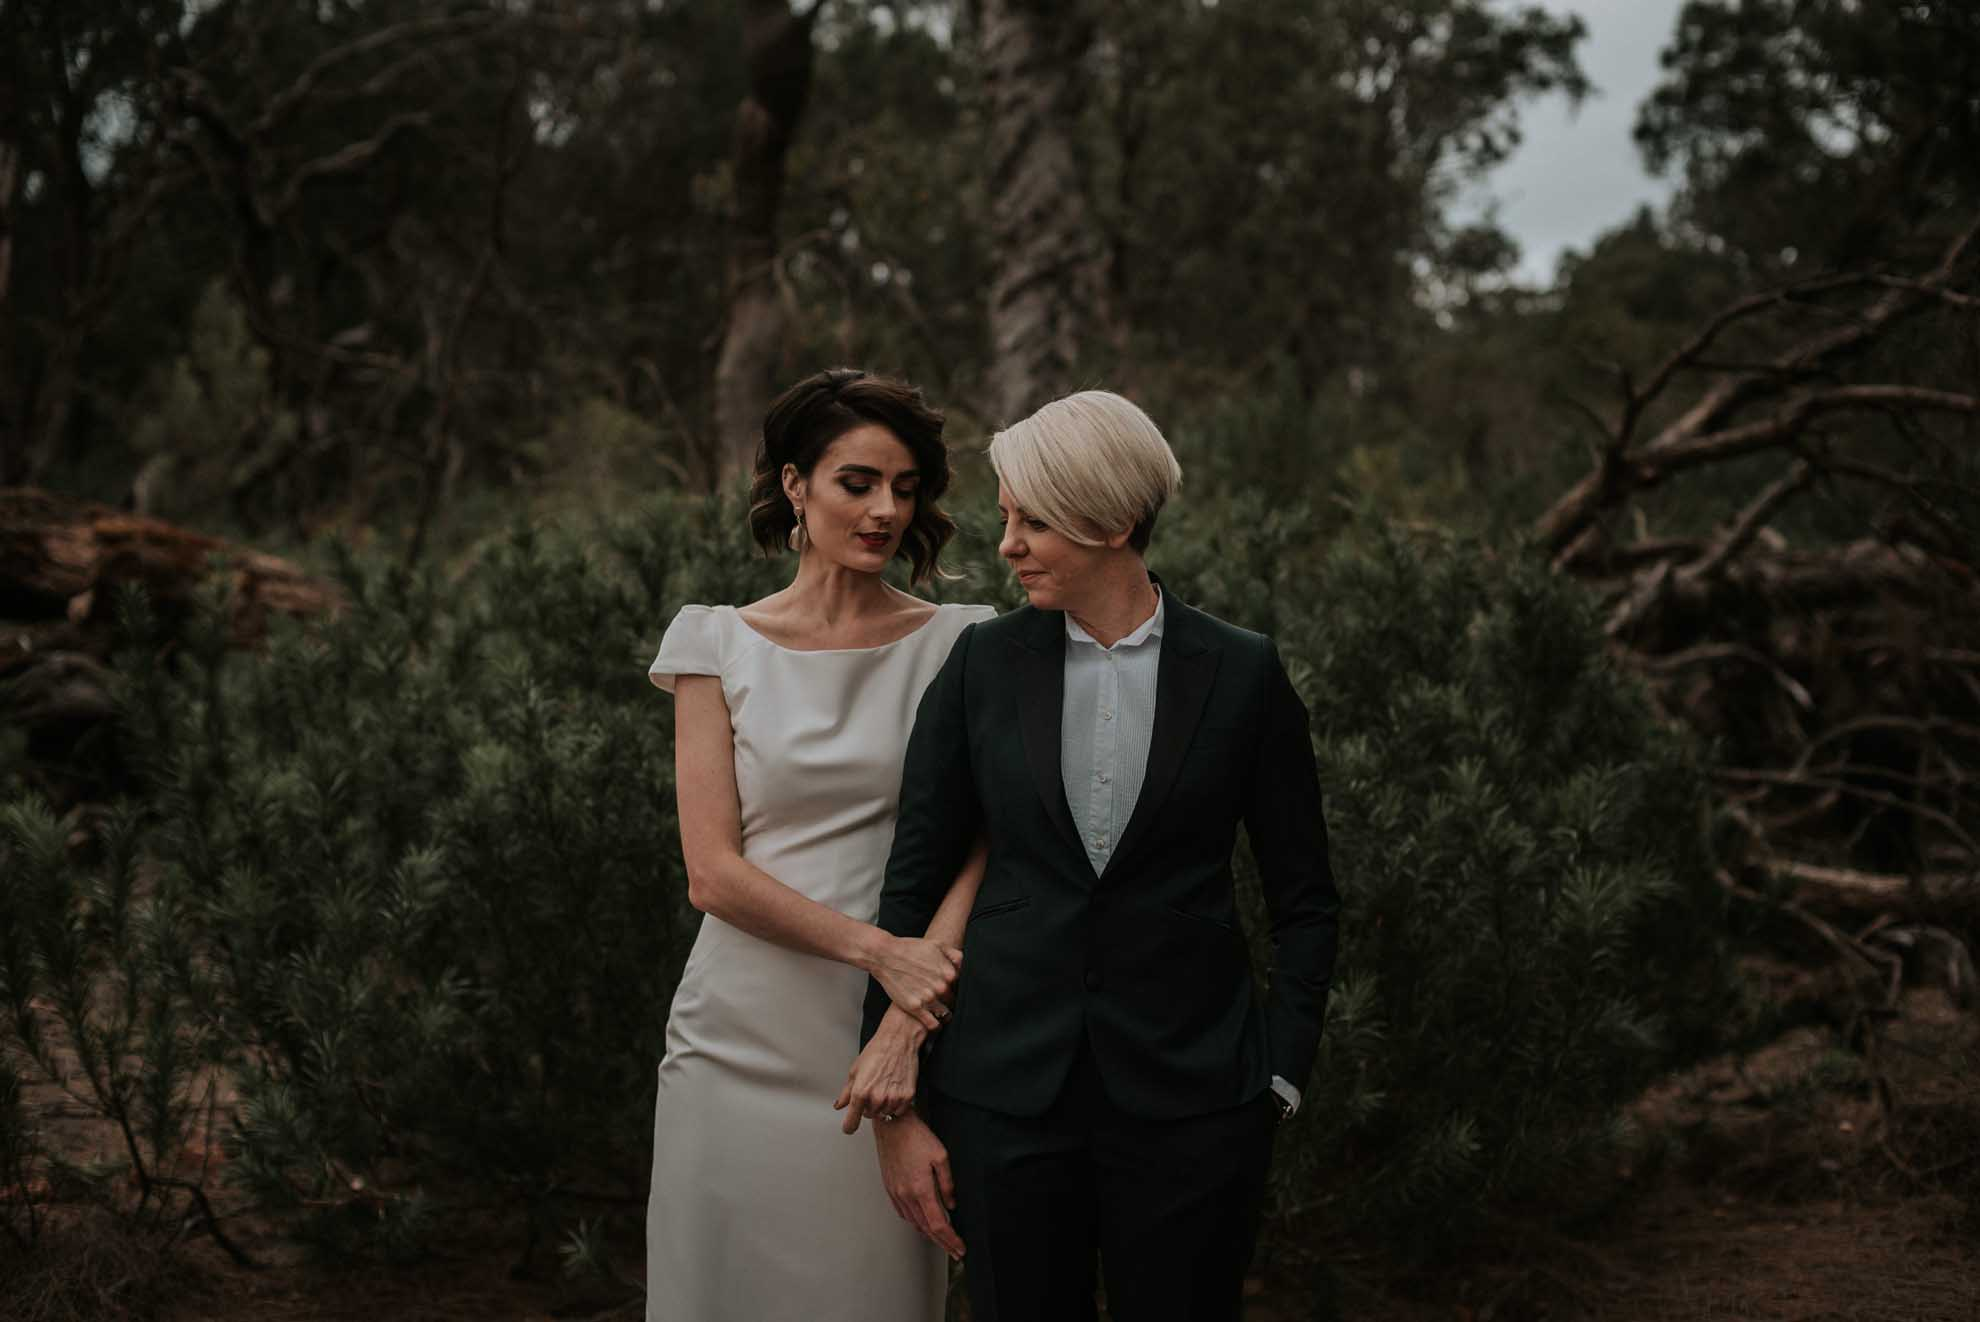 Shannon Stent Western Australia Margaret River same-sex wedding, engagement and couples photographer Dancing With Her magazine directory